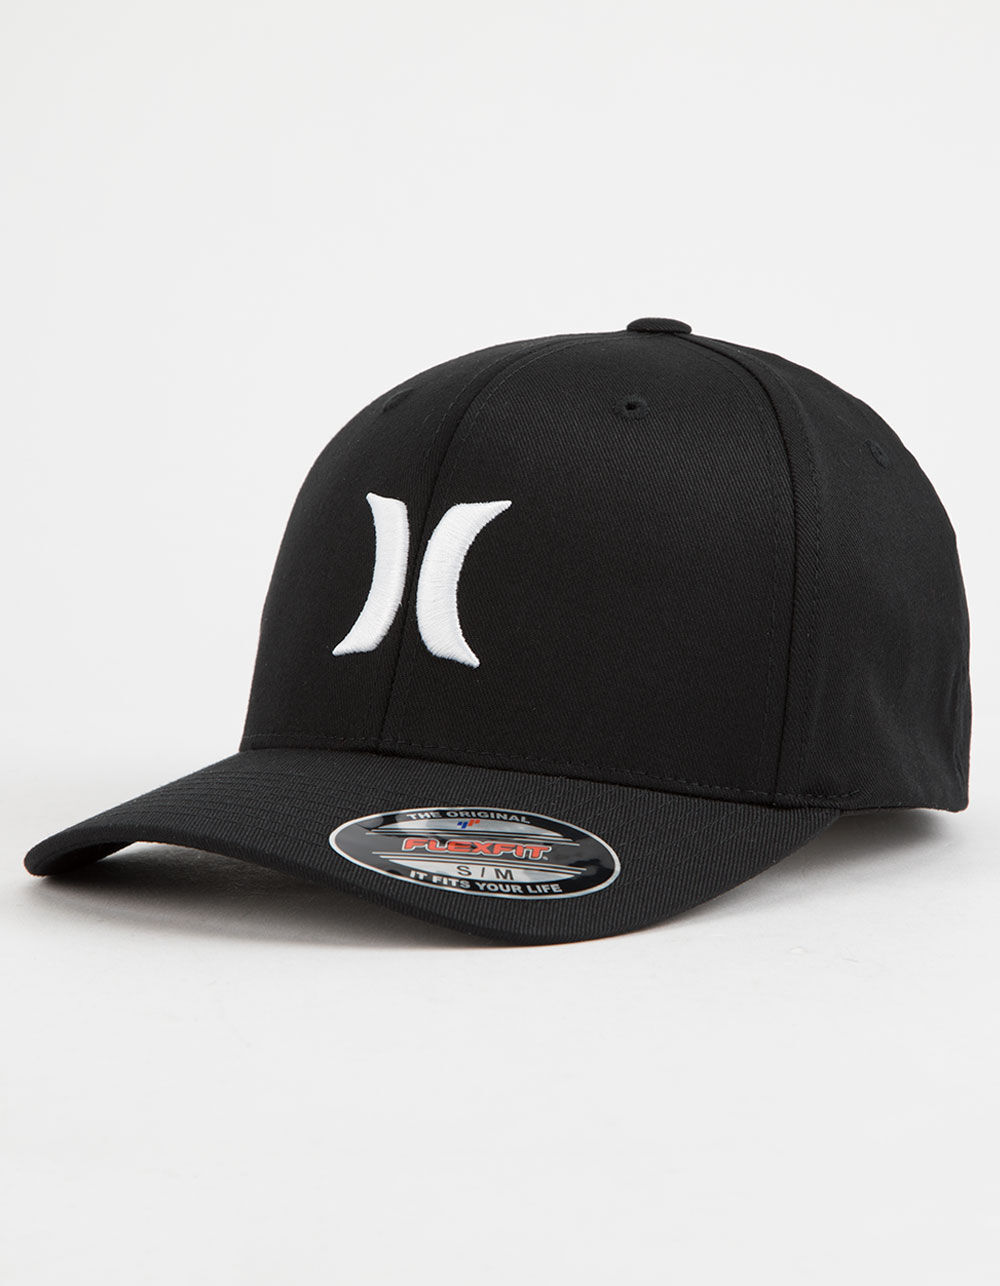 HURLEY One & Only Black & White Hat